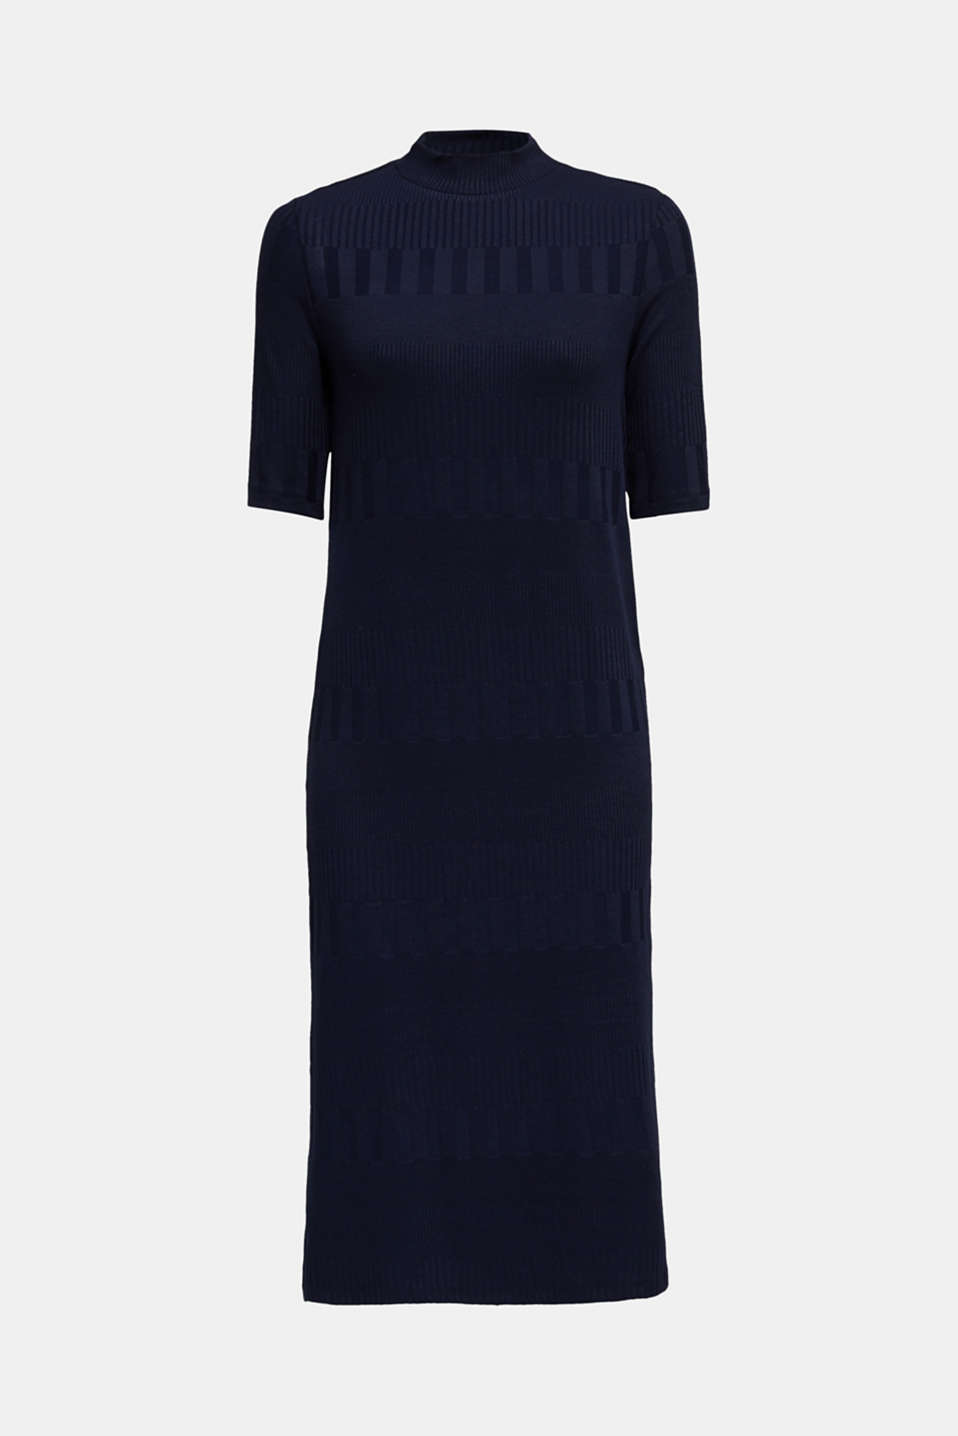 Stretch jersey dress with texture and a stand-up collar, NAVY, detail image number 7